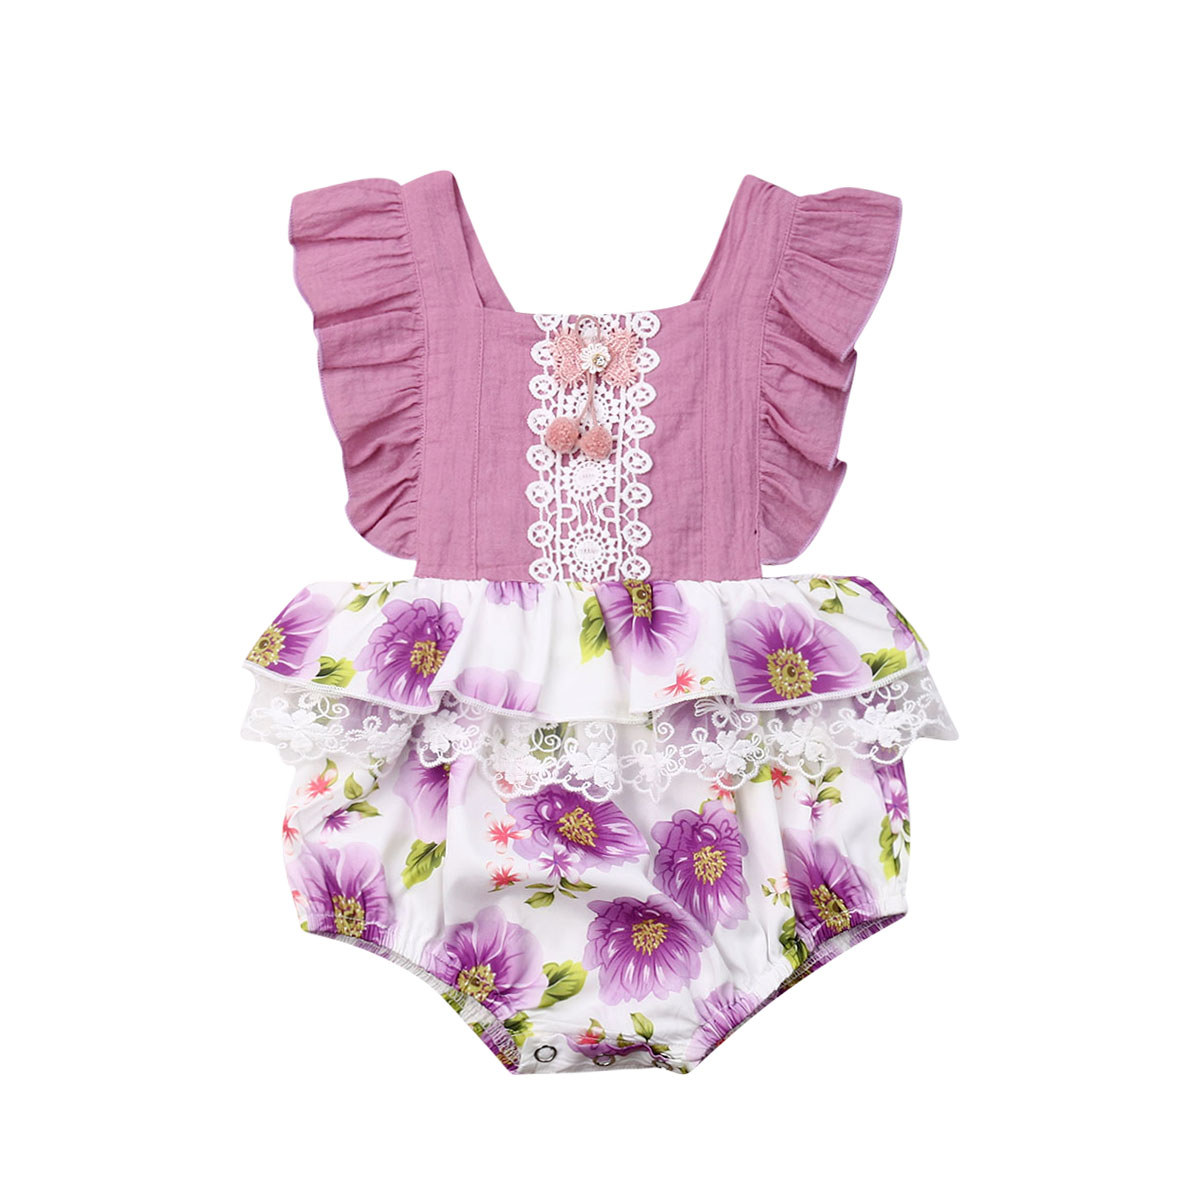 Toddler Newborn Baby Girls   Rompers   Lace Flower Ruffles Jumpsuit Pom Pom Playsuit Sunsuit Baby Girls Costumes Summer